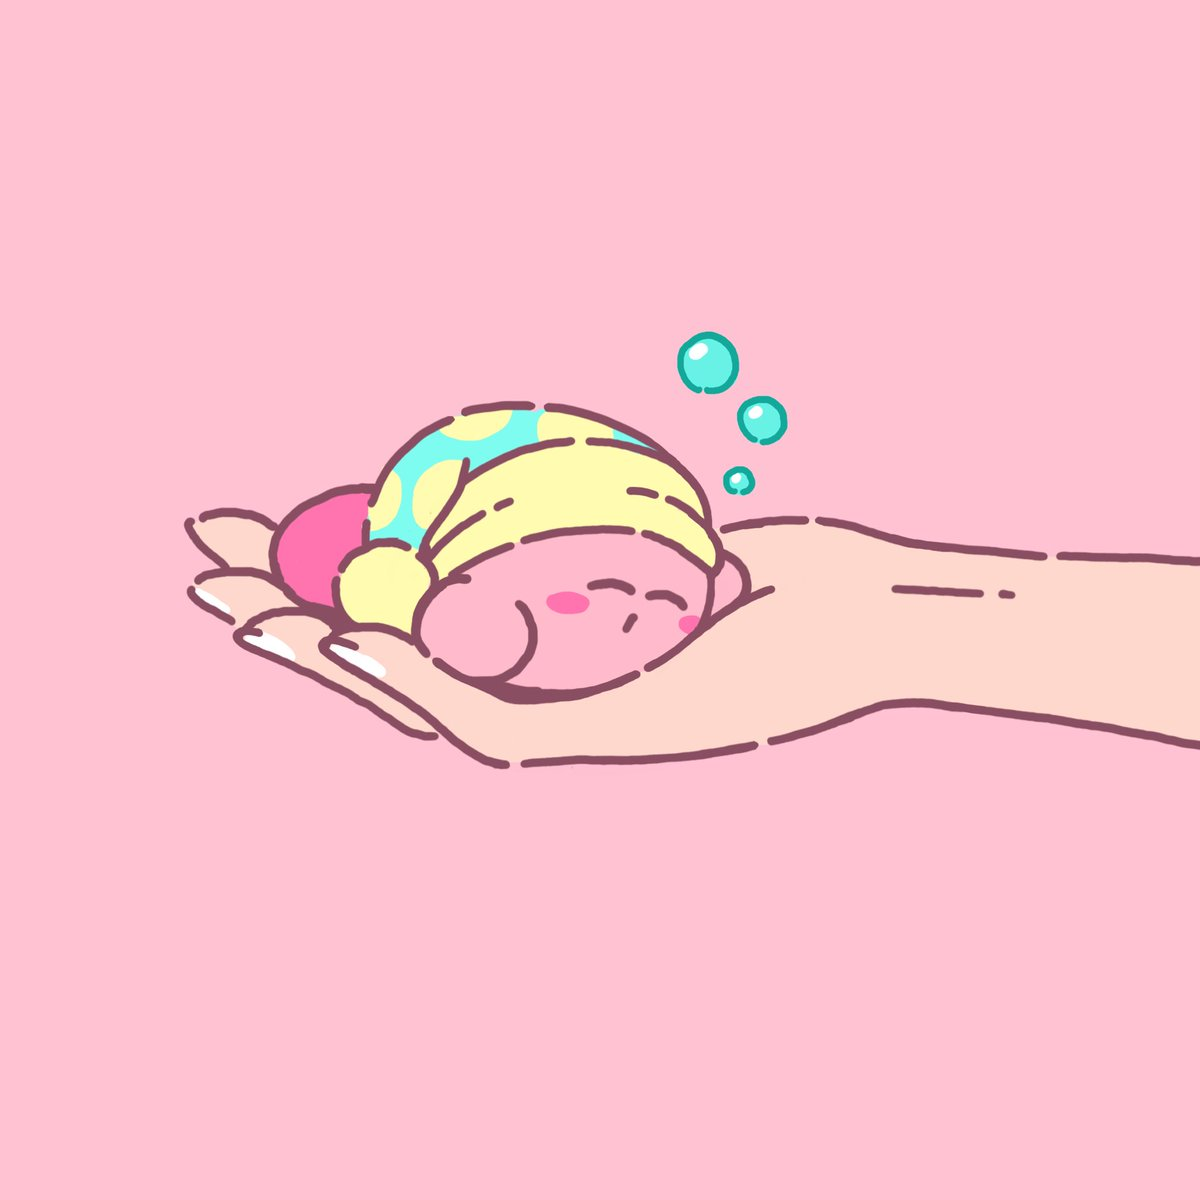 If you find a sleeping Kirby, move carefully so as not to disturb